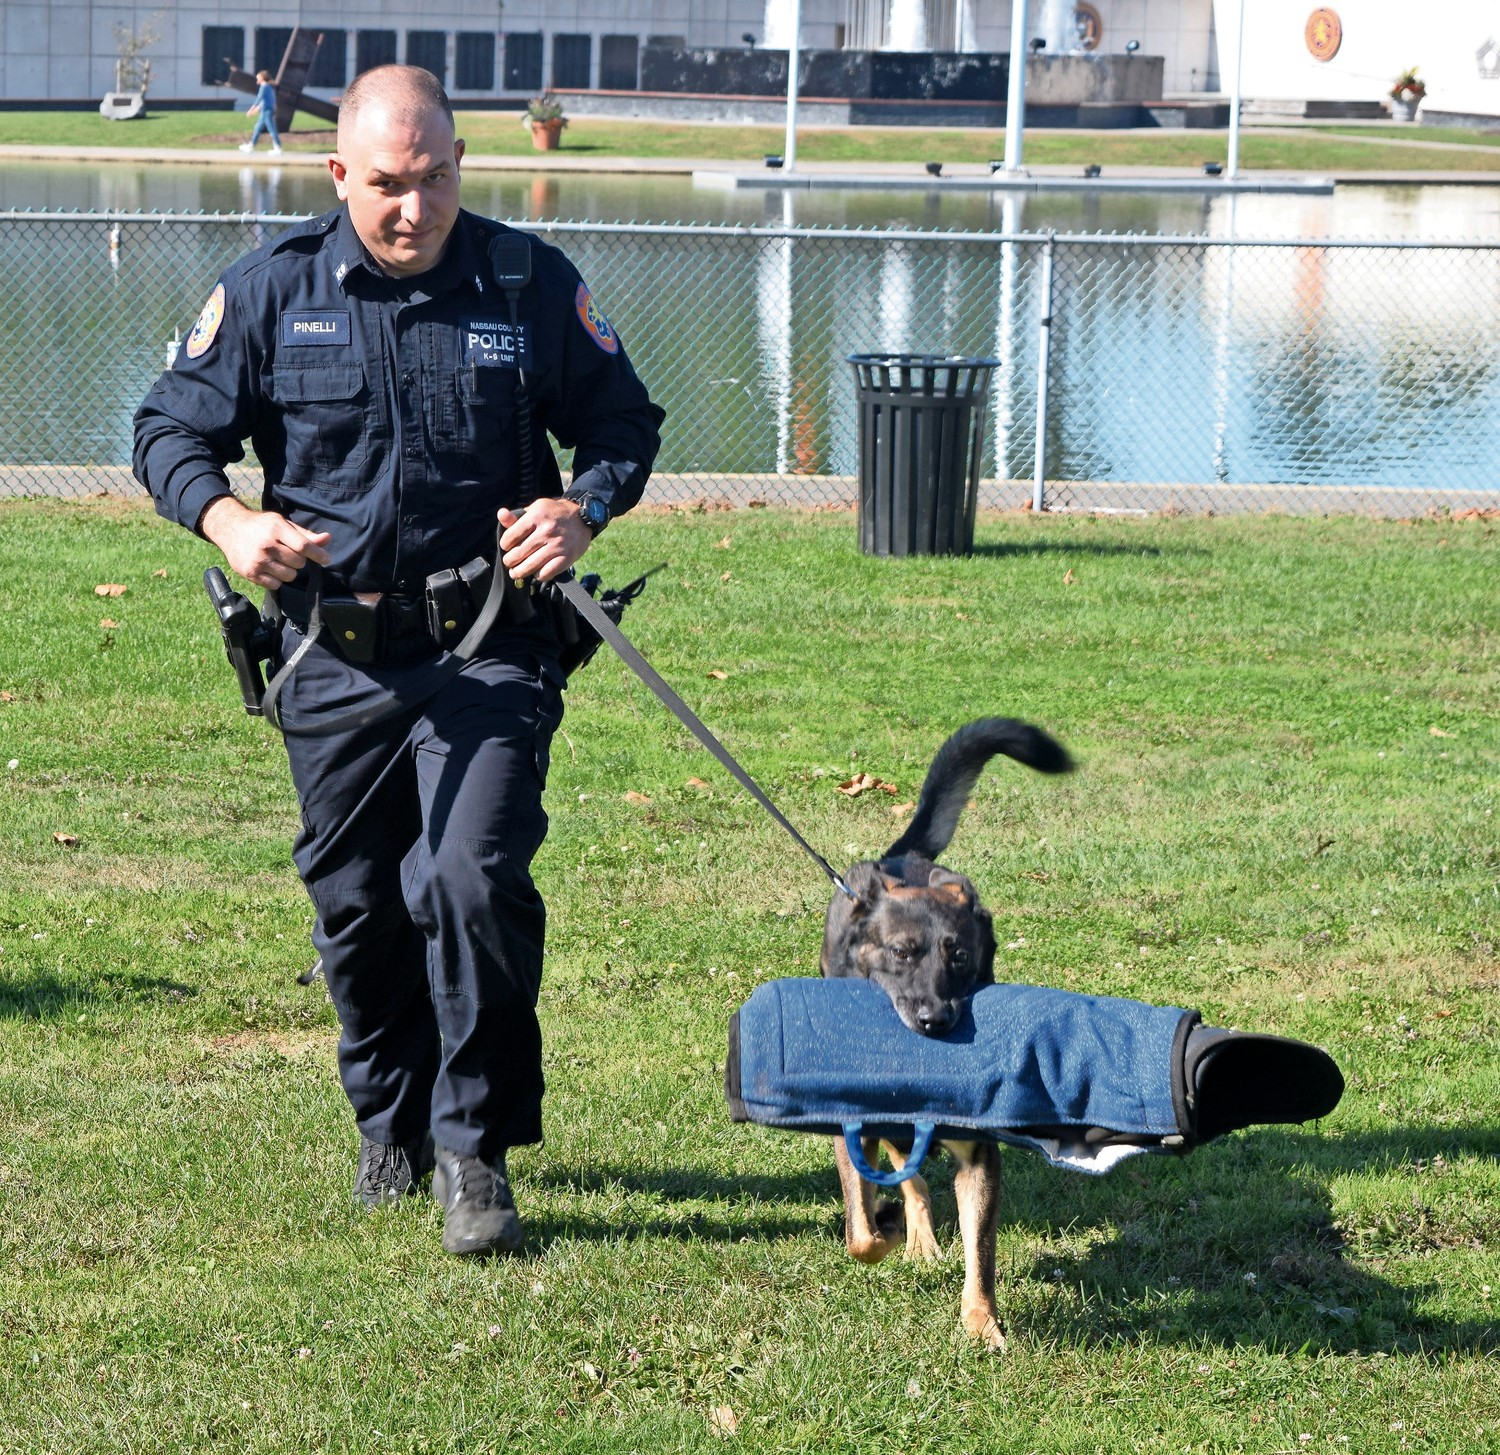 Seren, a Nassau County police dog, worked with handler Matthew Pinelli at the annual canine graduation at Eisenhower Park in East Meadow on Oct. 18.